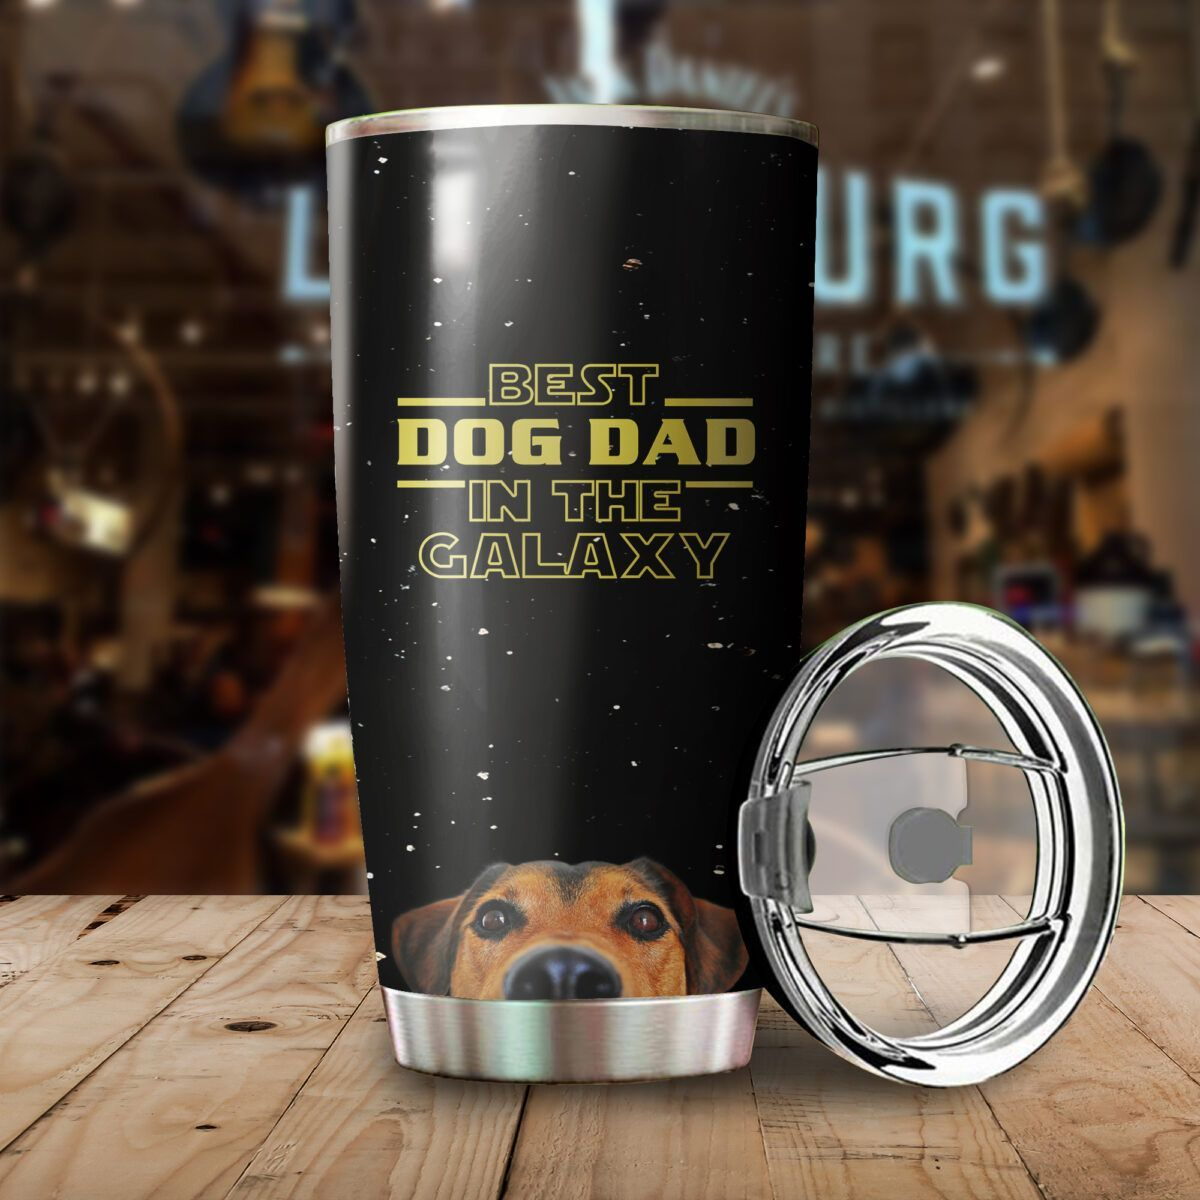 Best Dog Dad in the Galaxy Stainless Steel Tumbler Cup